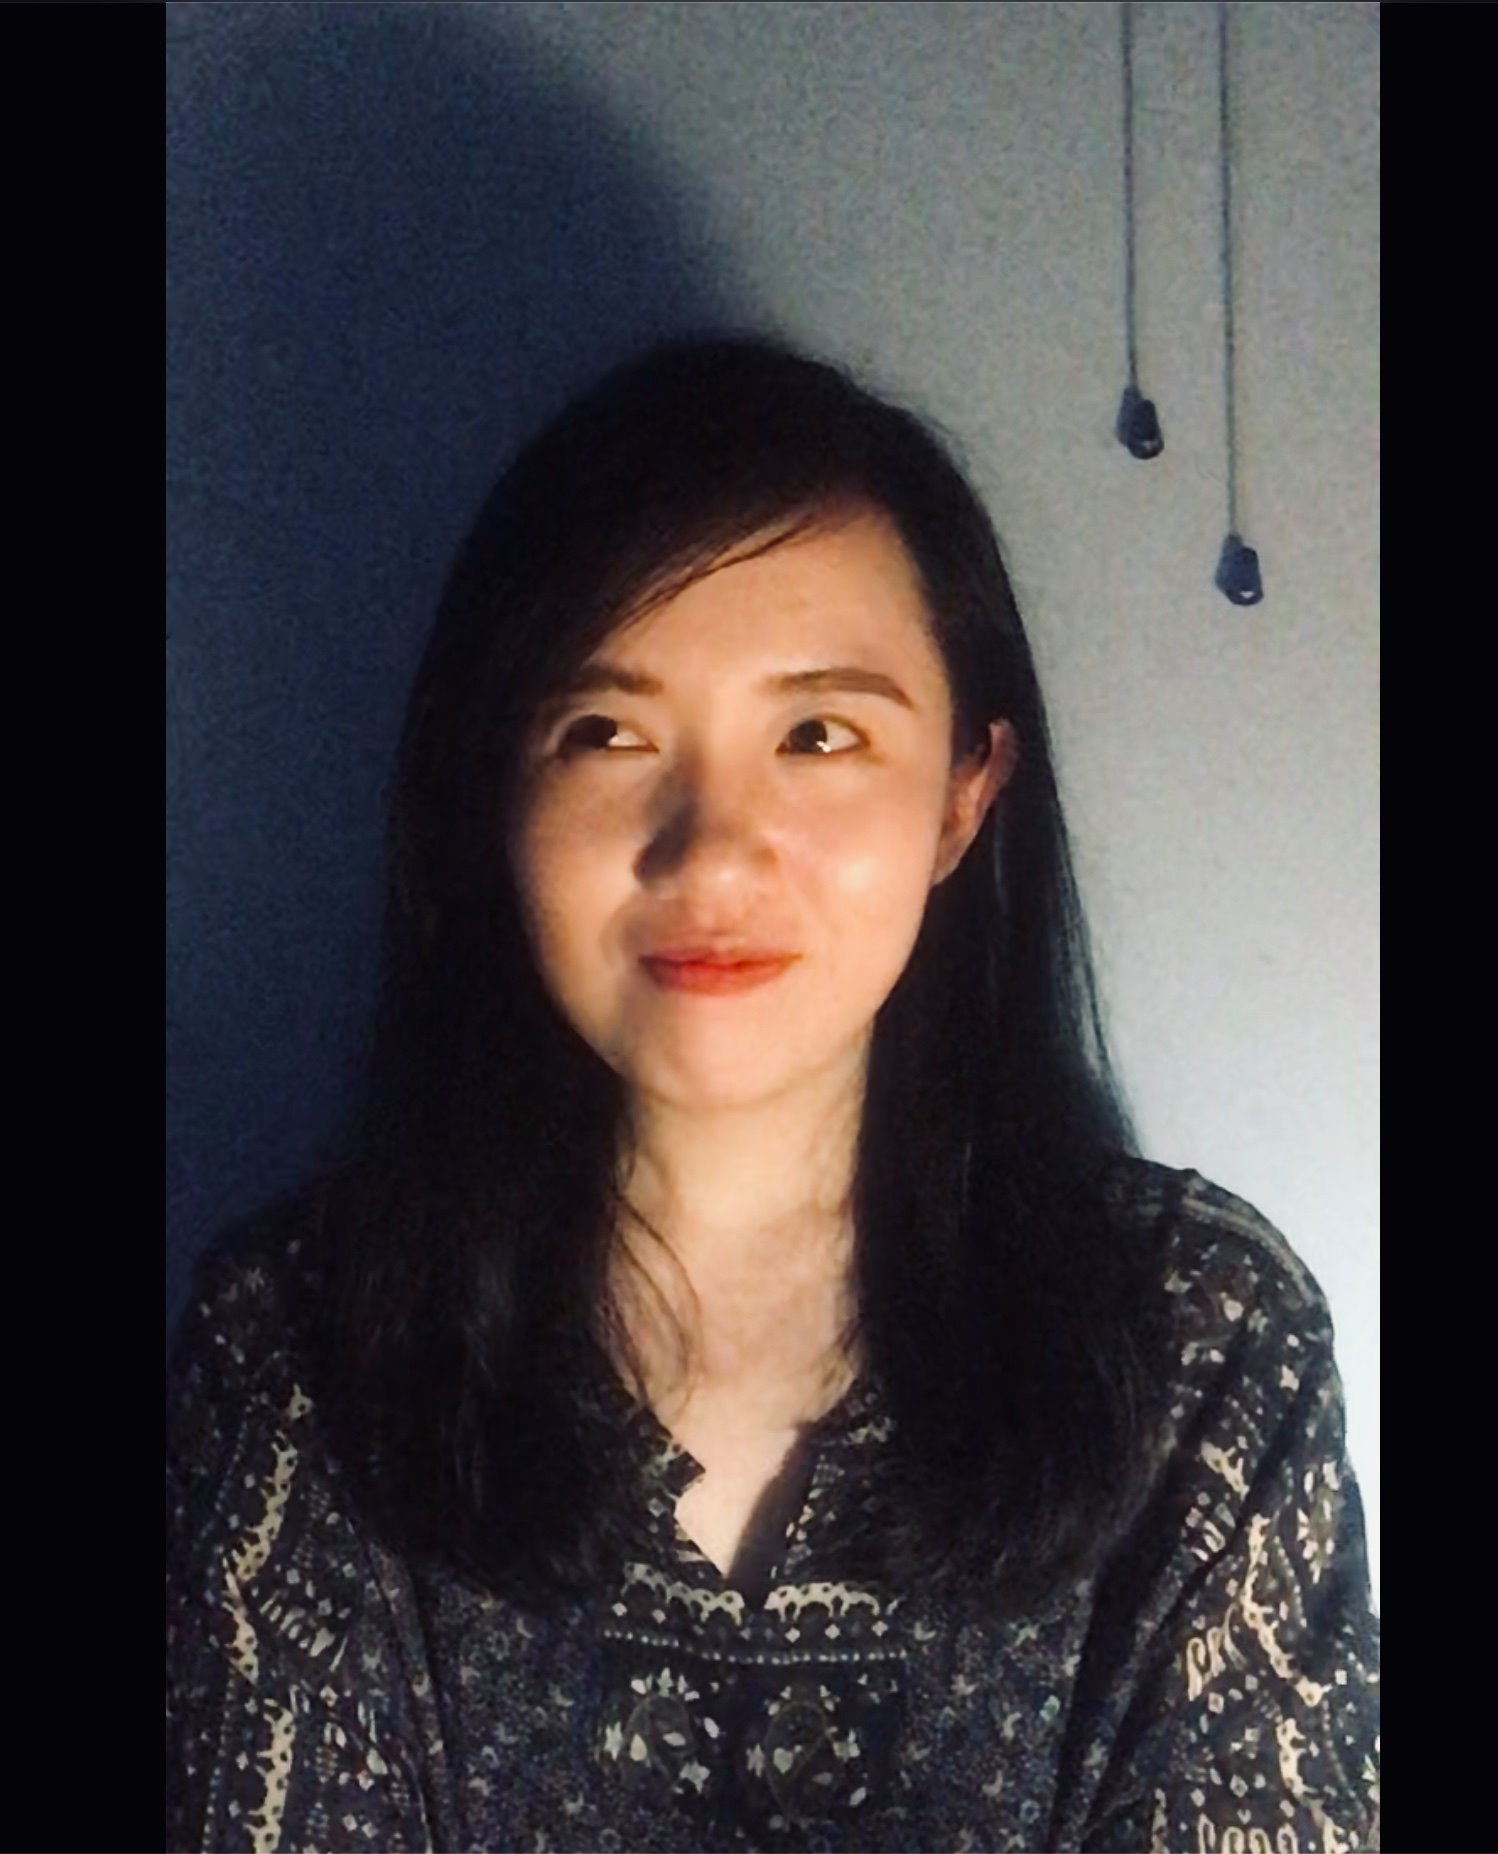 Ms. Cung Huyền Anh